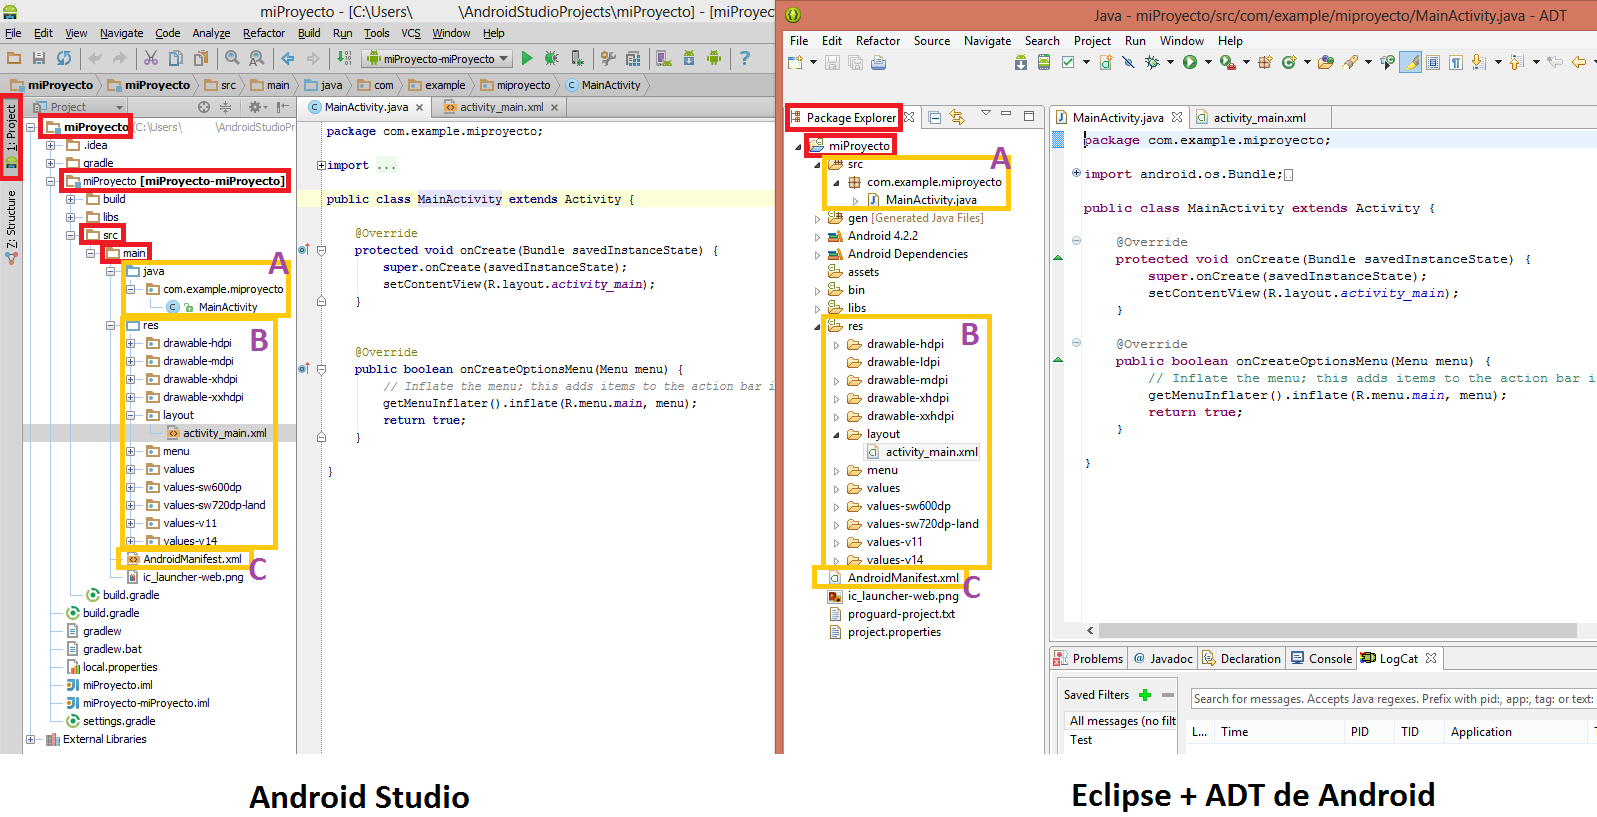 Comparacion Android Studio vs Eclipse + ADT de Android - www.jarroba.com